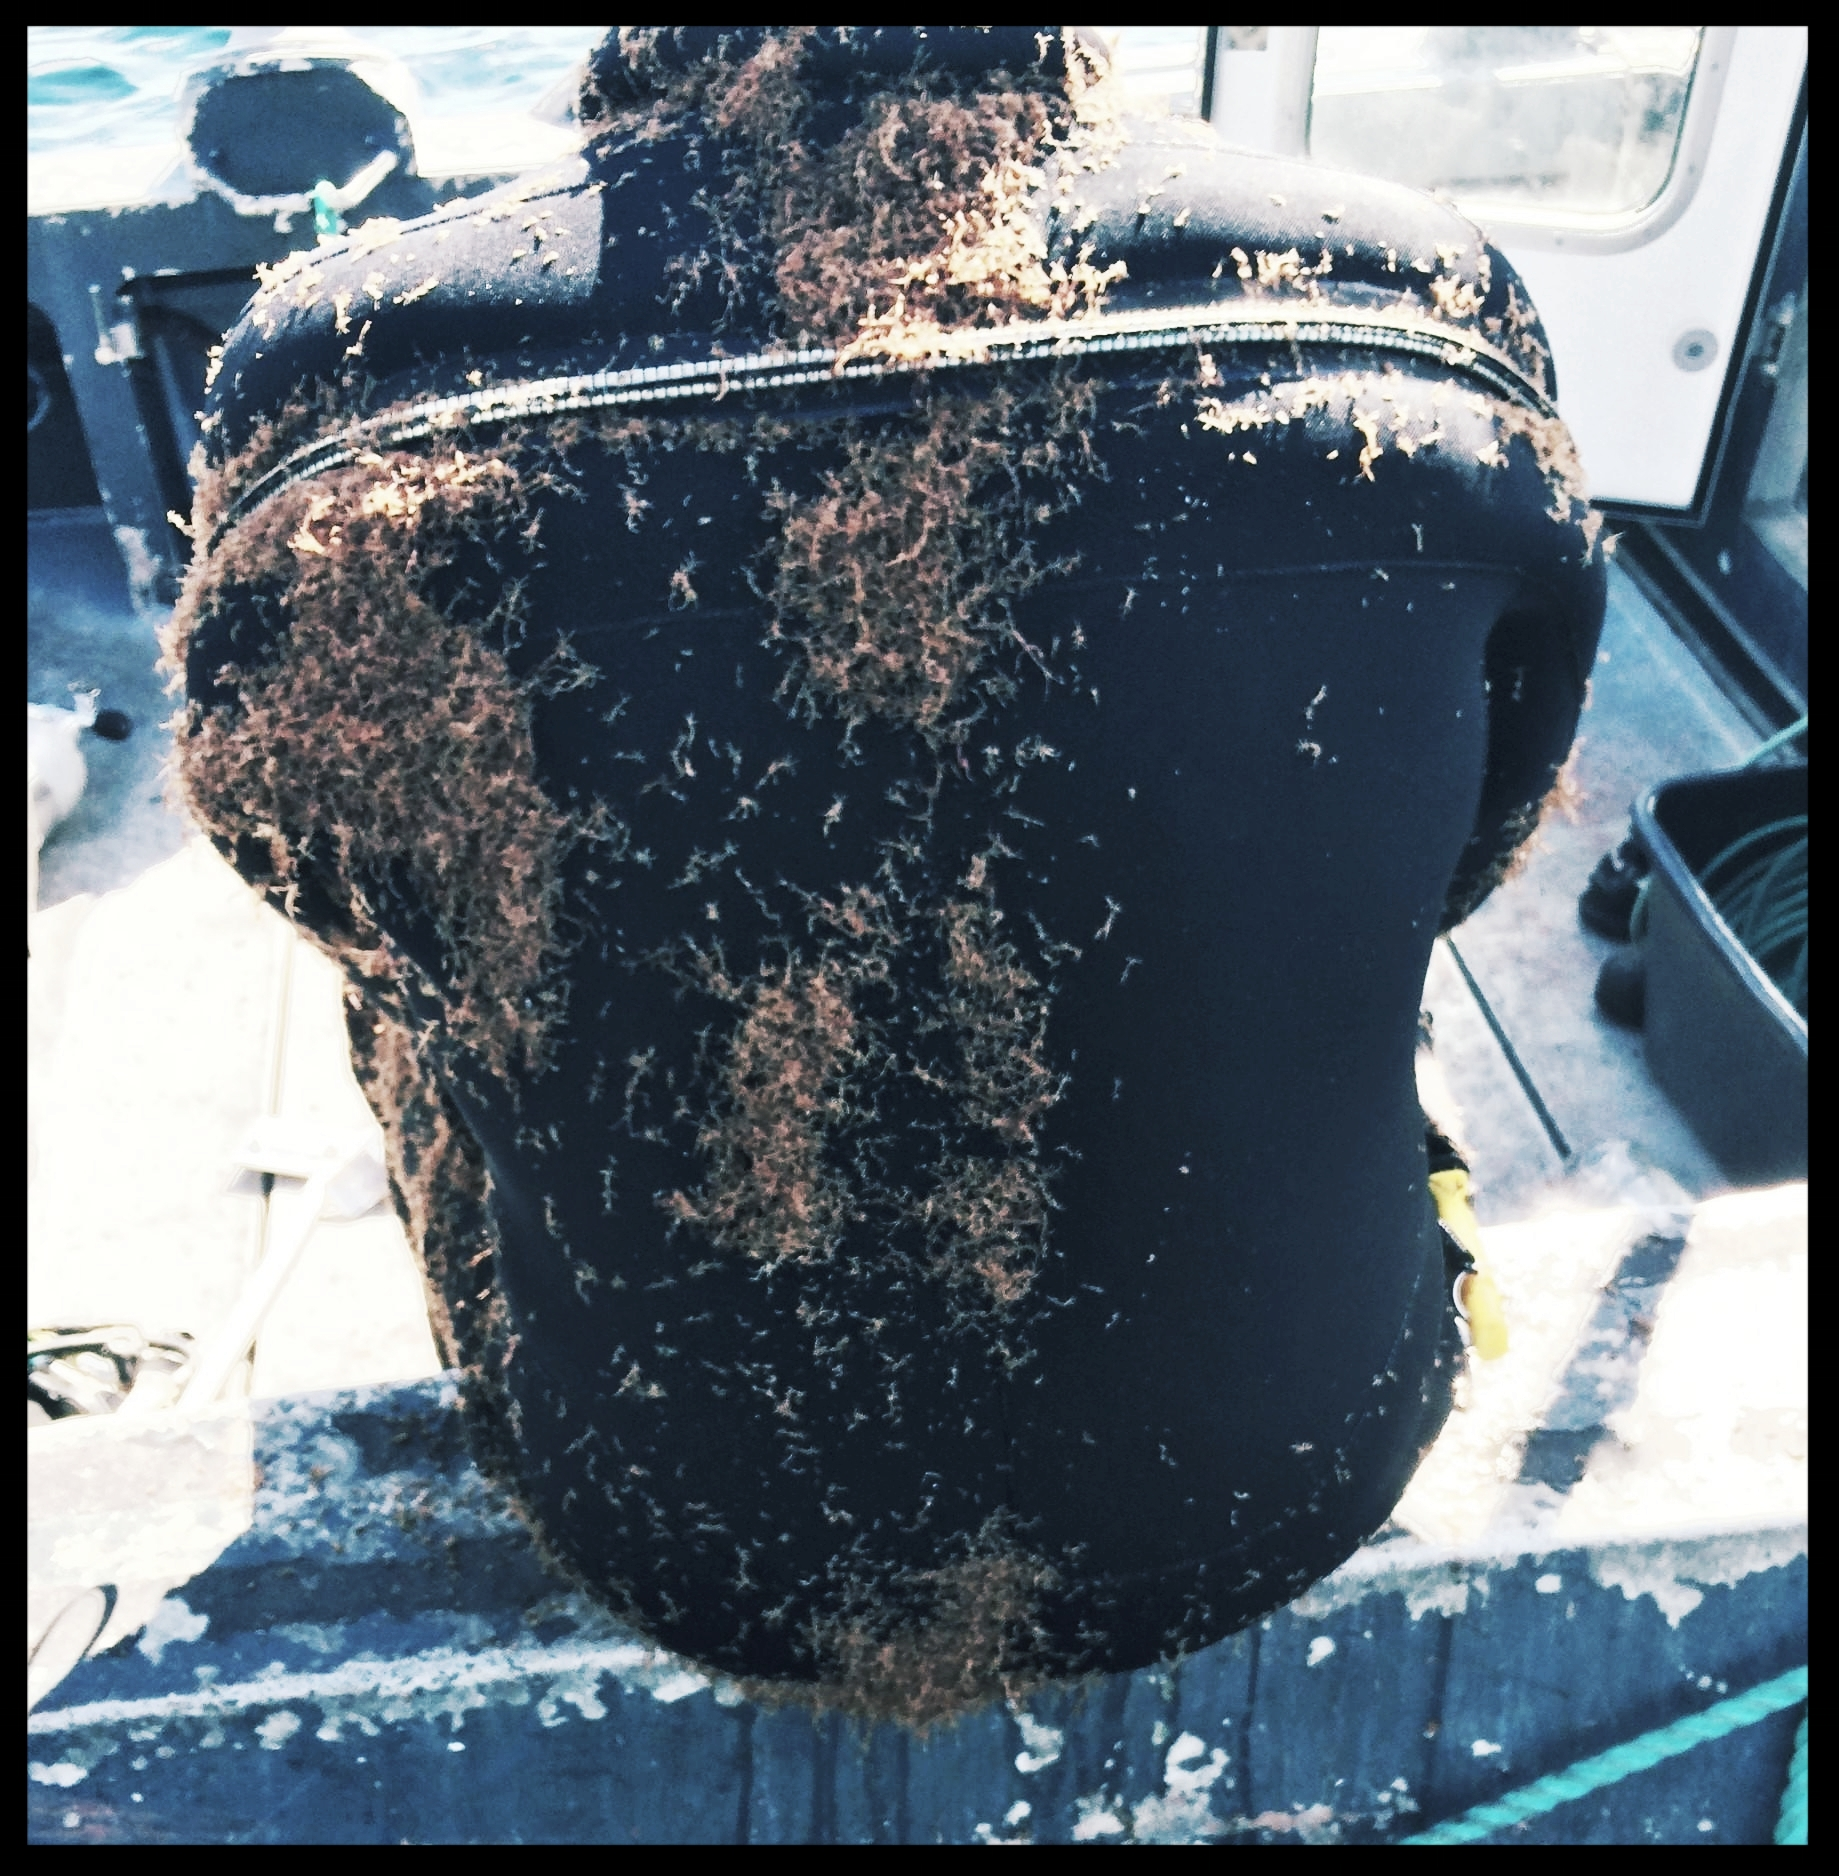 Diver with biofouling residue after cleaning.